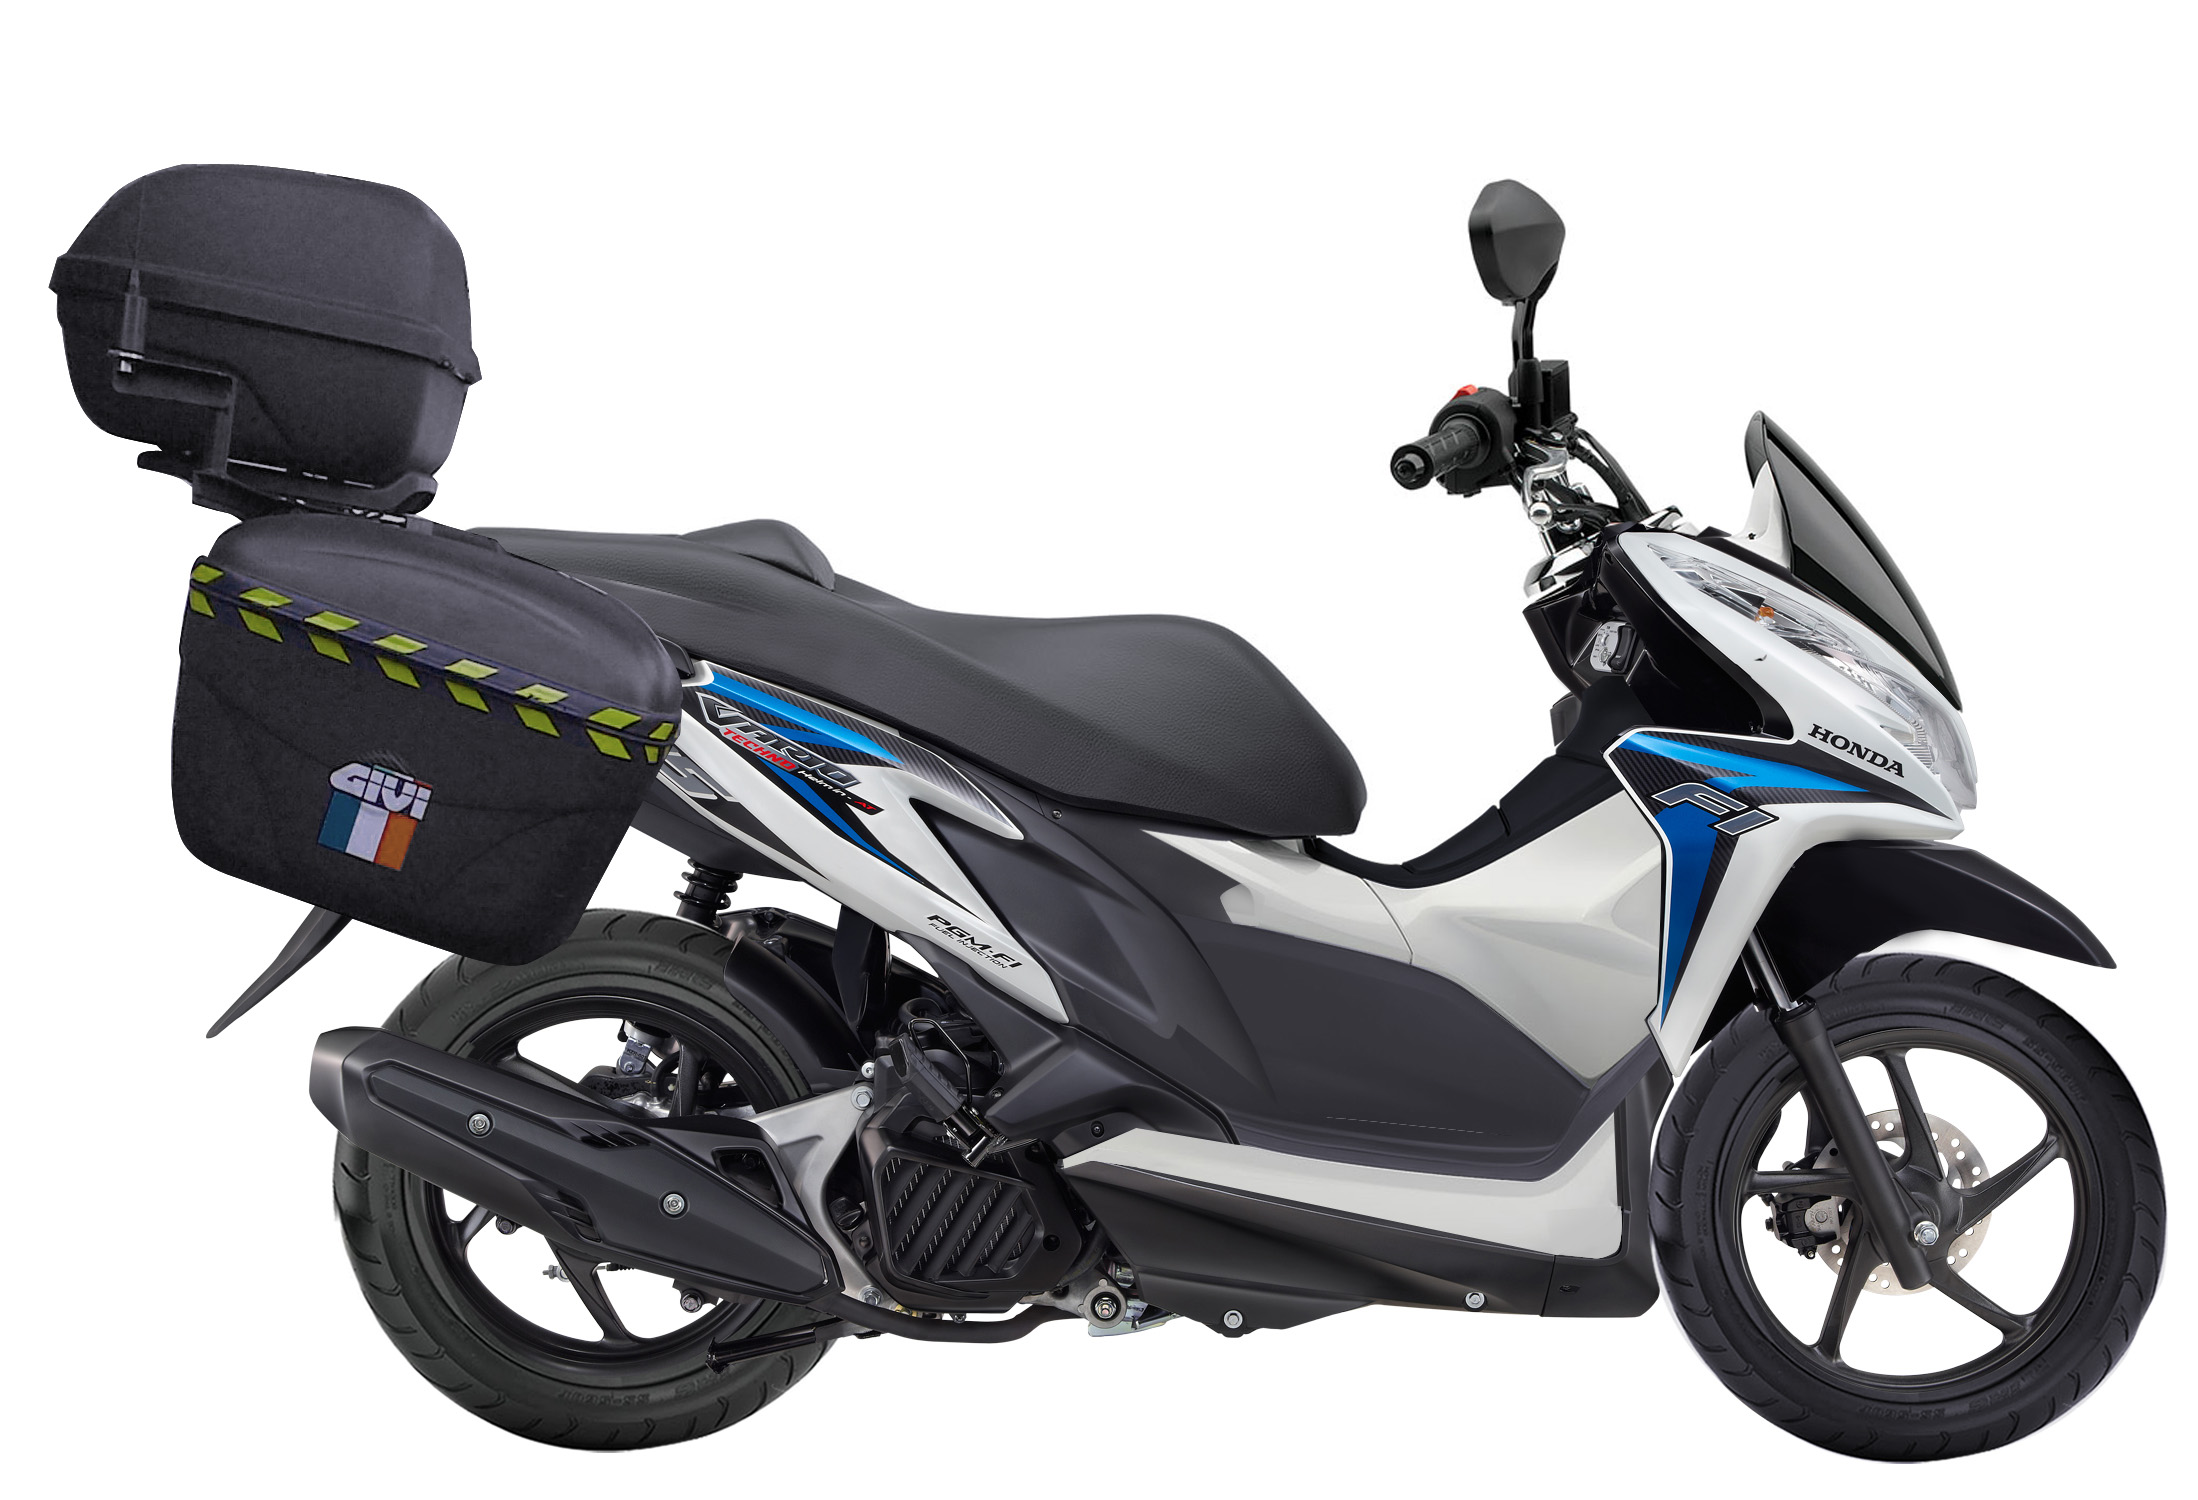 modif vario 125 cbs untuk touring model pcx - fushion model